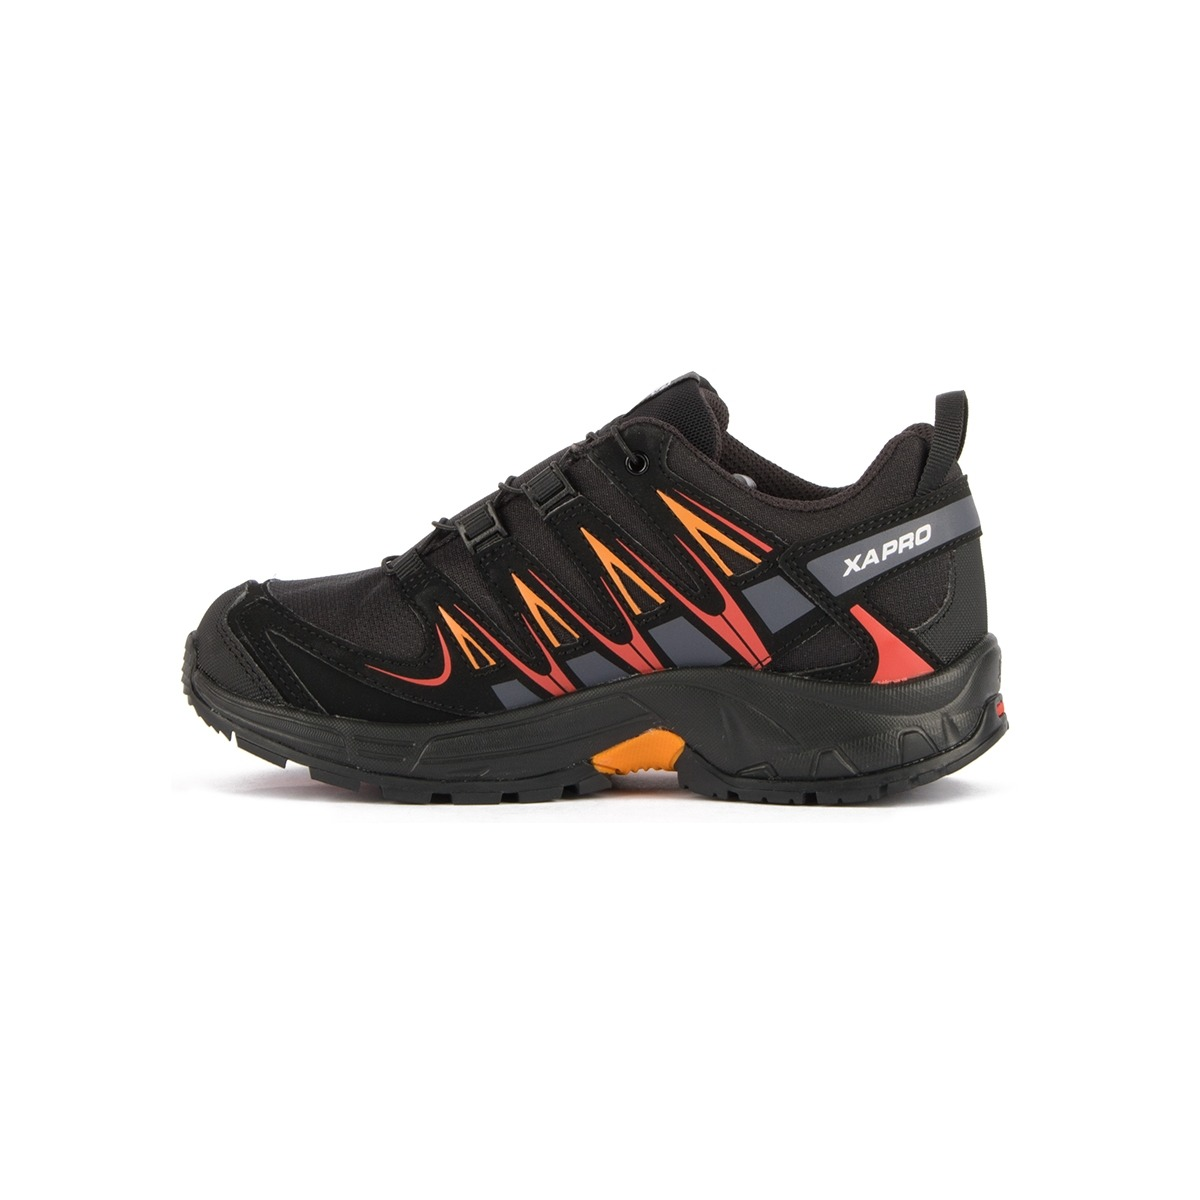 Salomon Zapatilla XA Pro 3D CSWP Junior Black Negro Niño